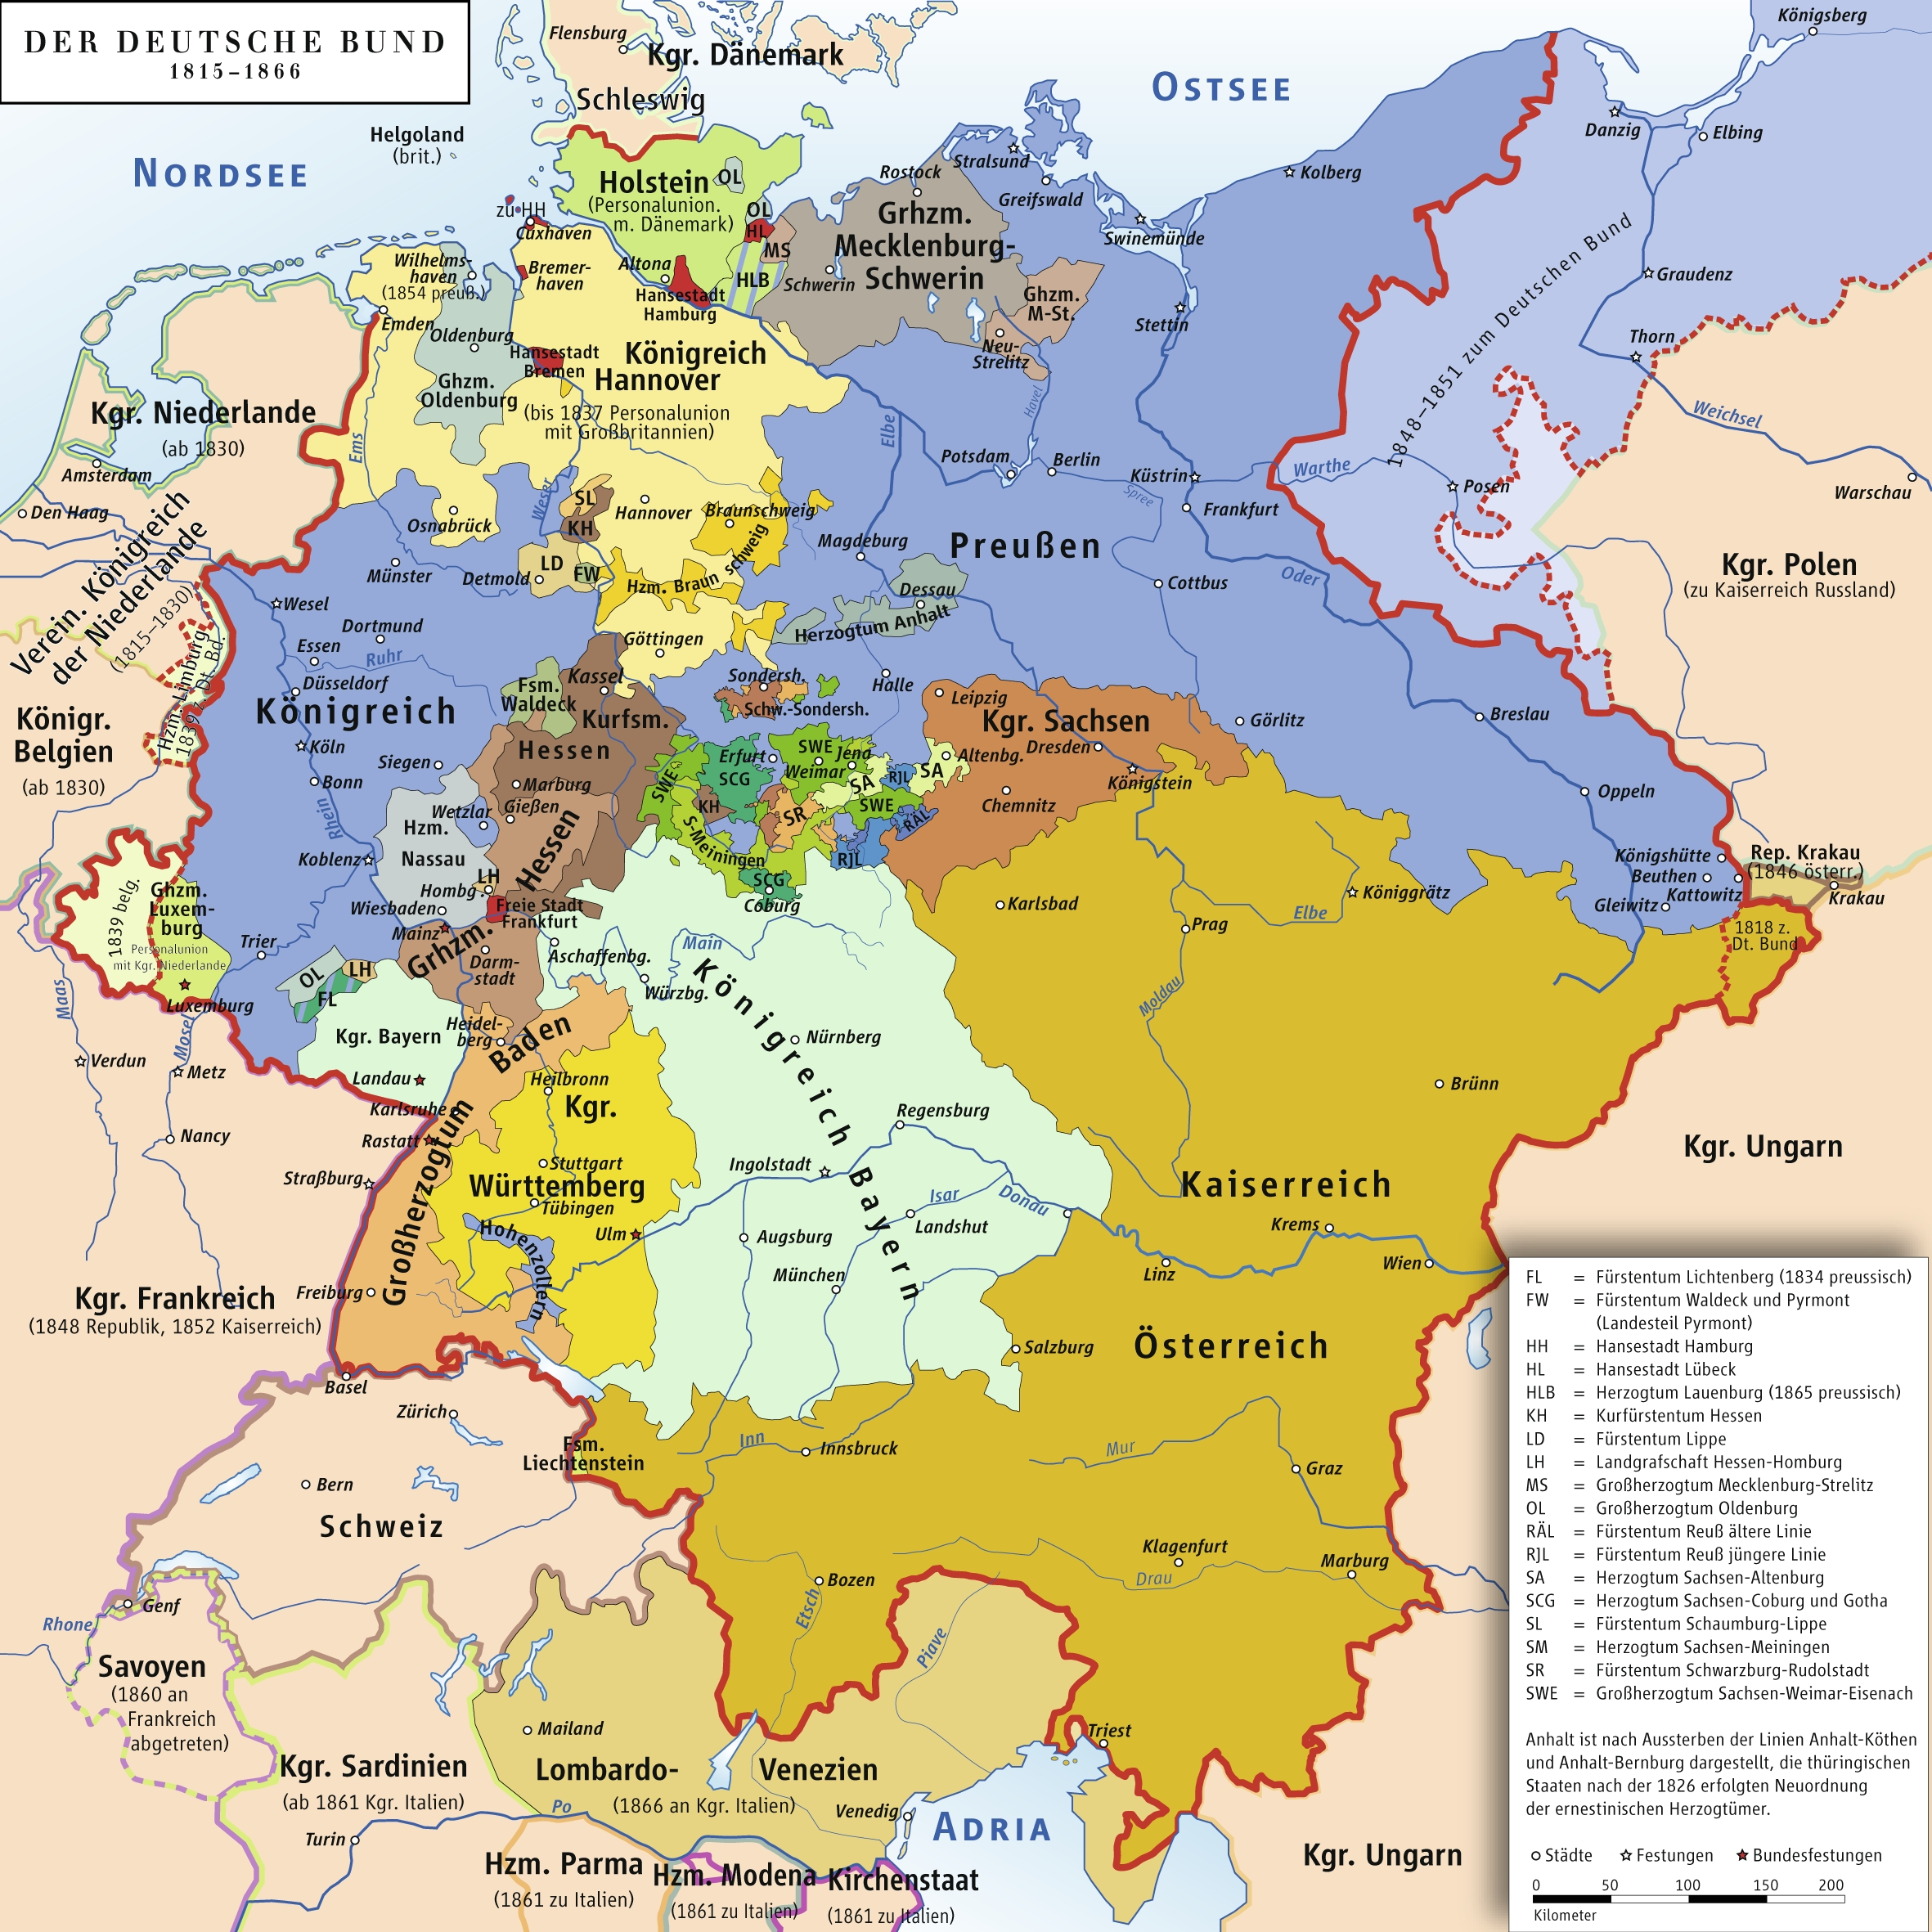 States Of The German Confederation Map 1815-1866 - Vgs German Sig inside German States Map